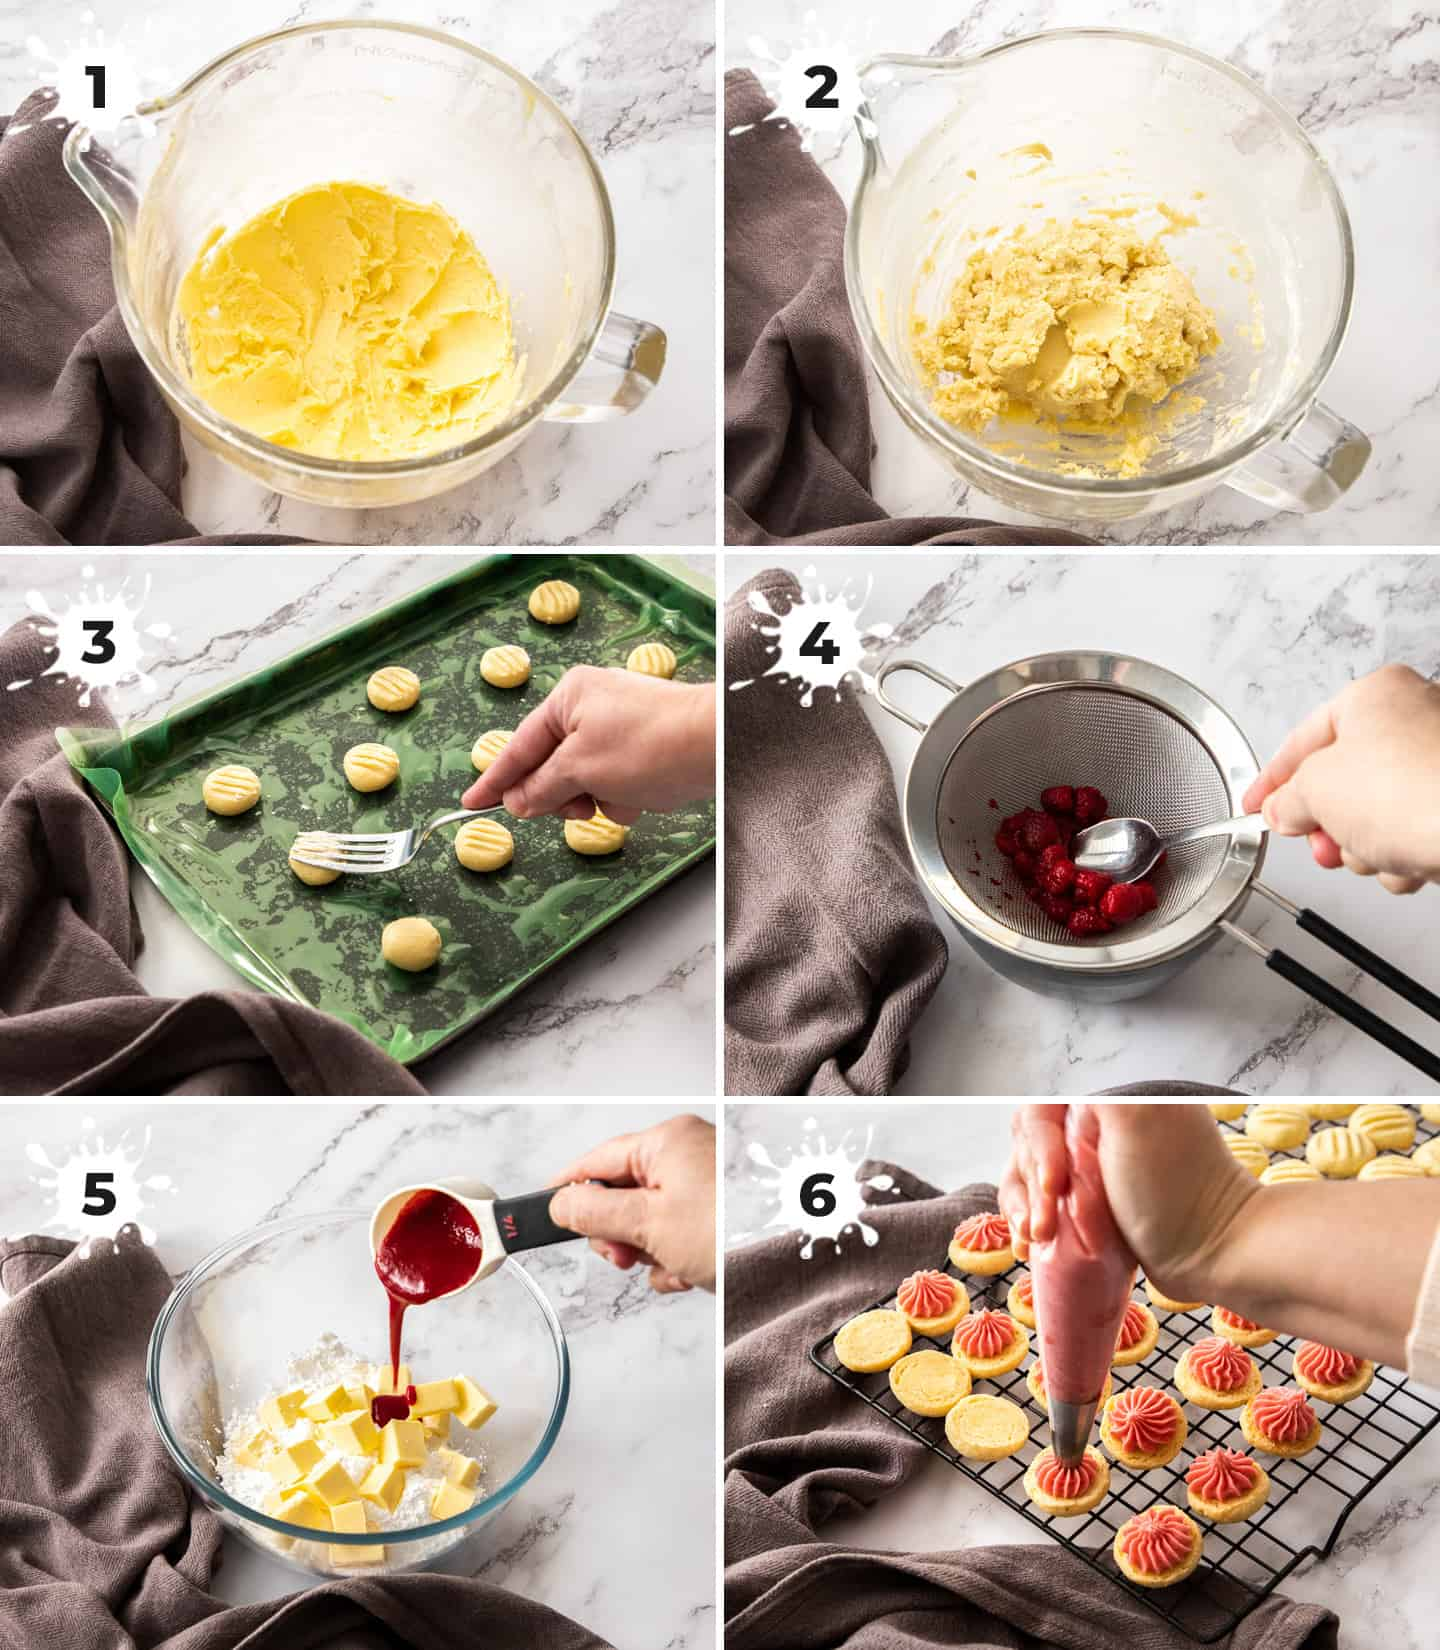 A collage of 6 images showing the steps to making the cookies and buttercream.